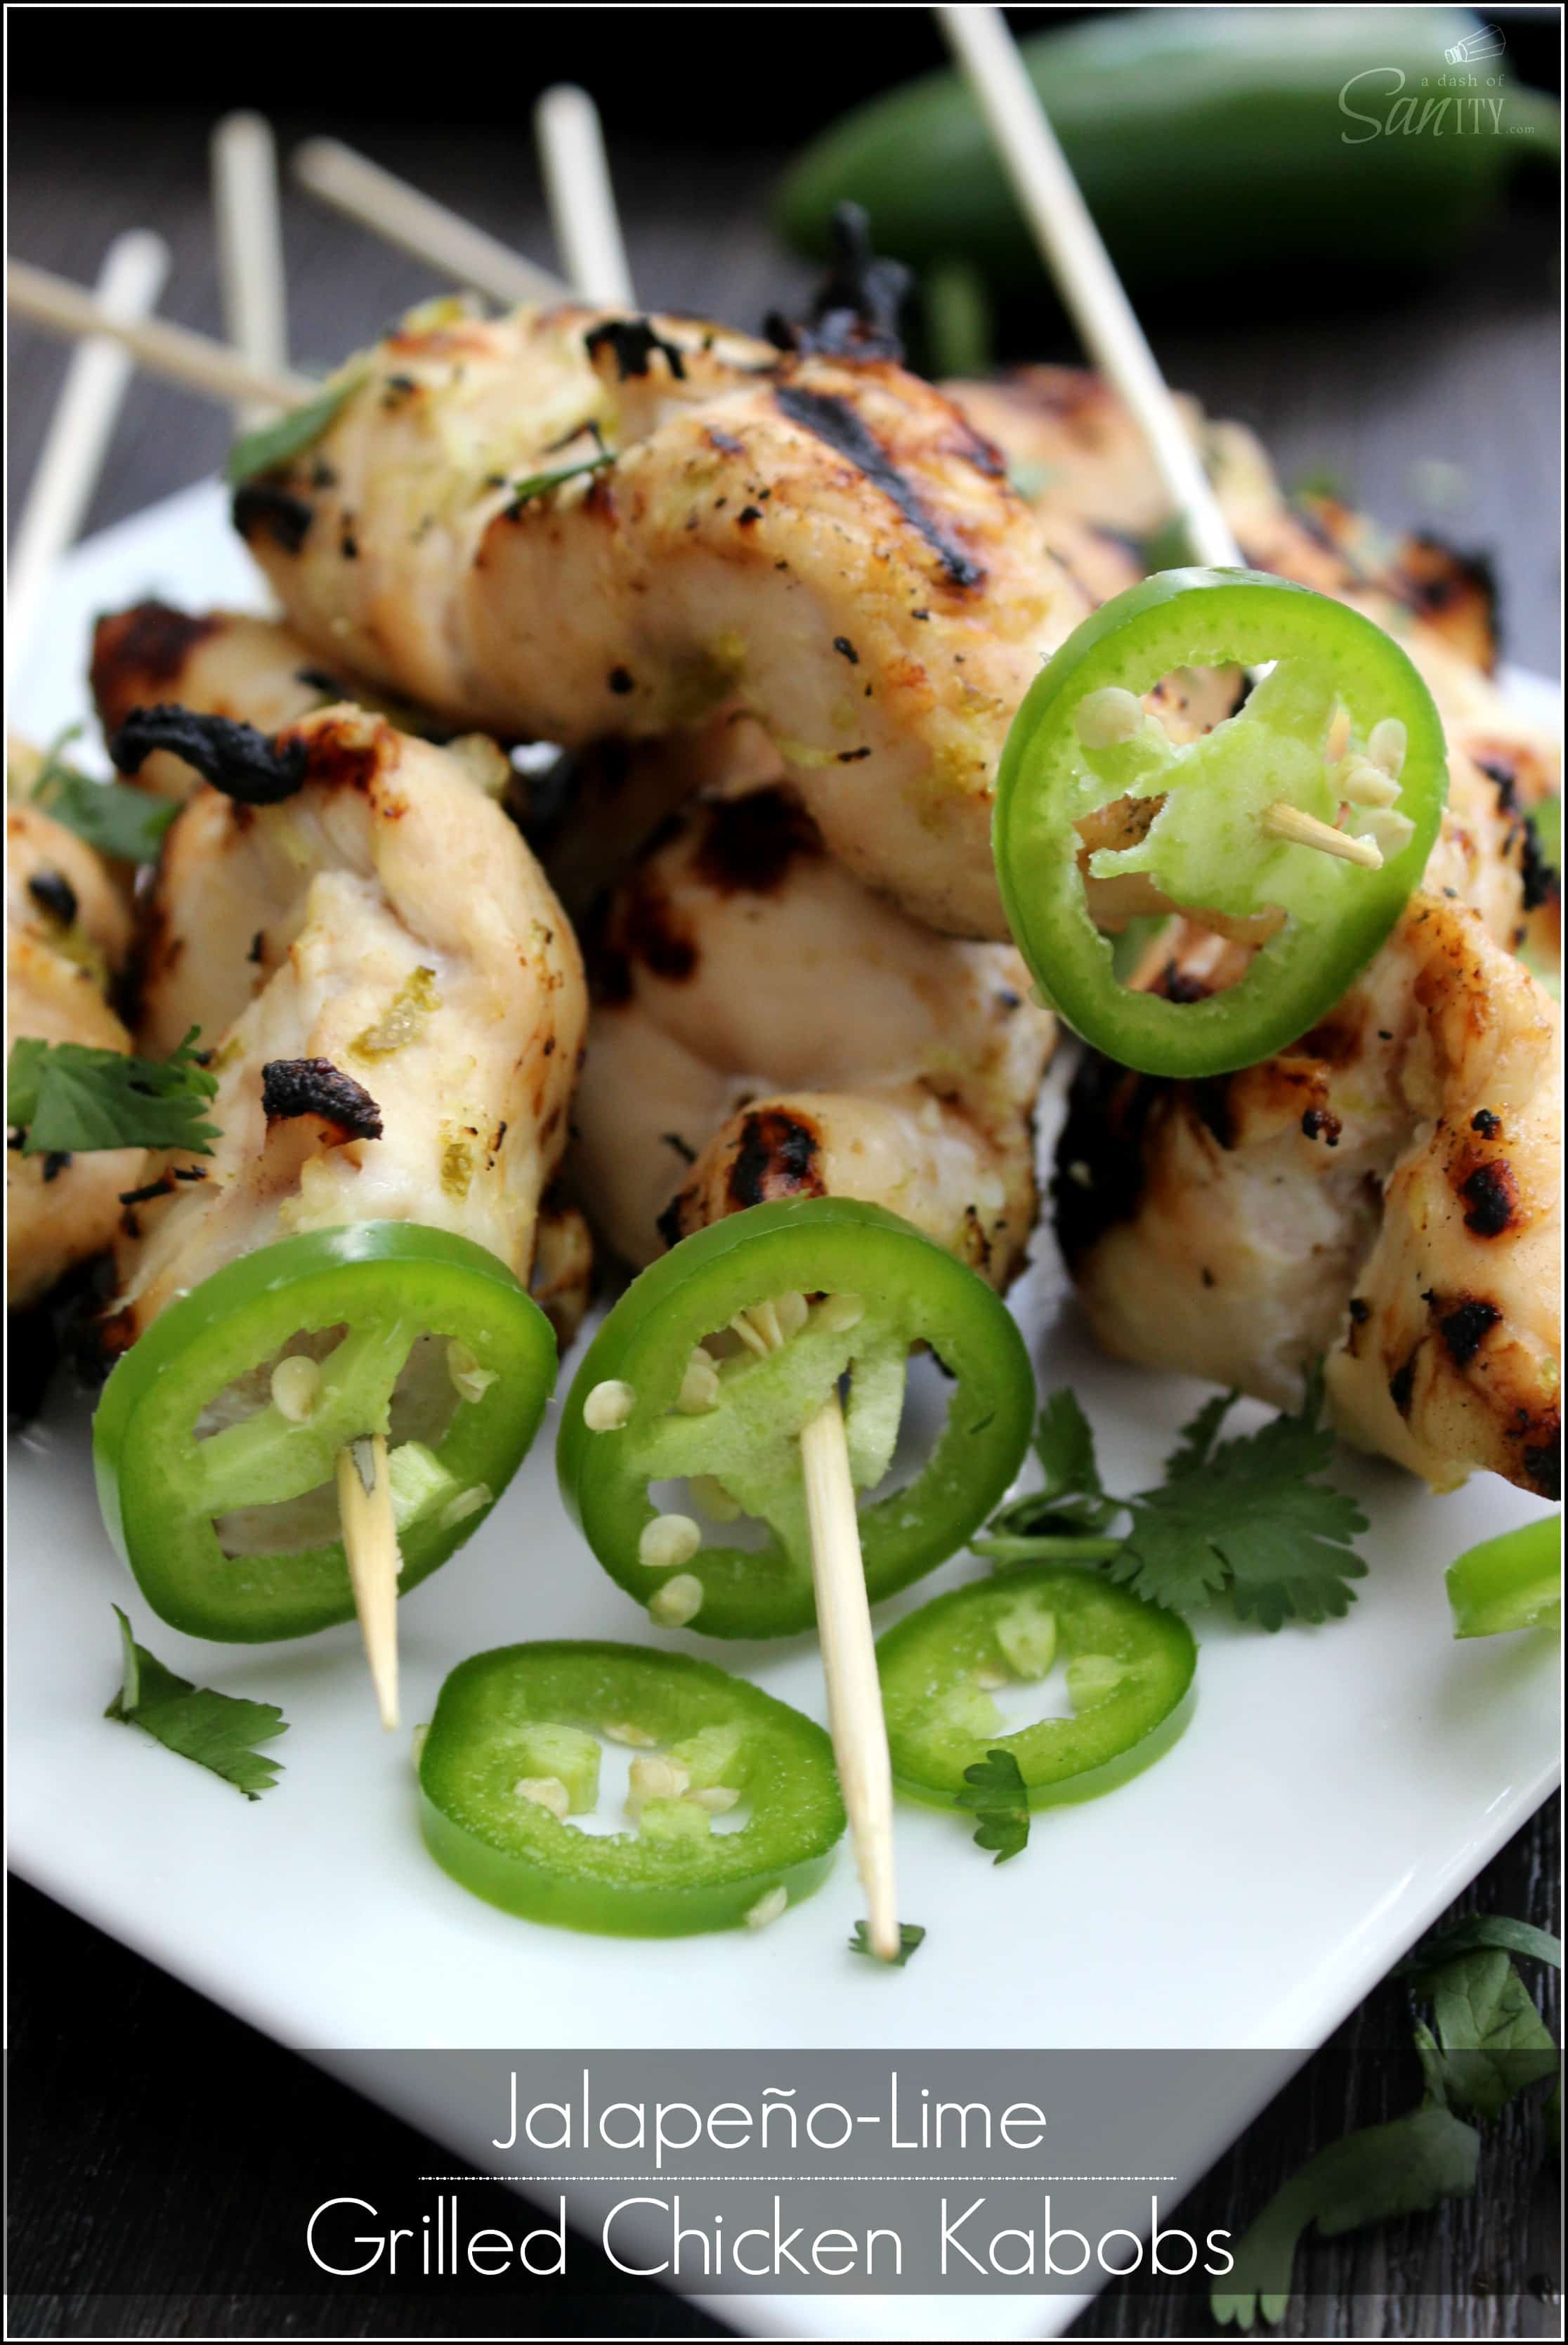 Jalapeño -Lime Grilled Chicken Kabobs